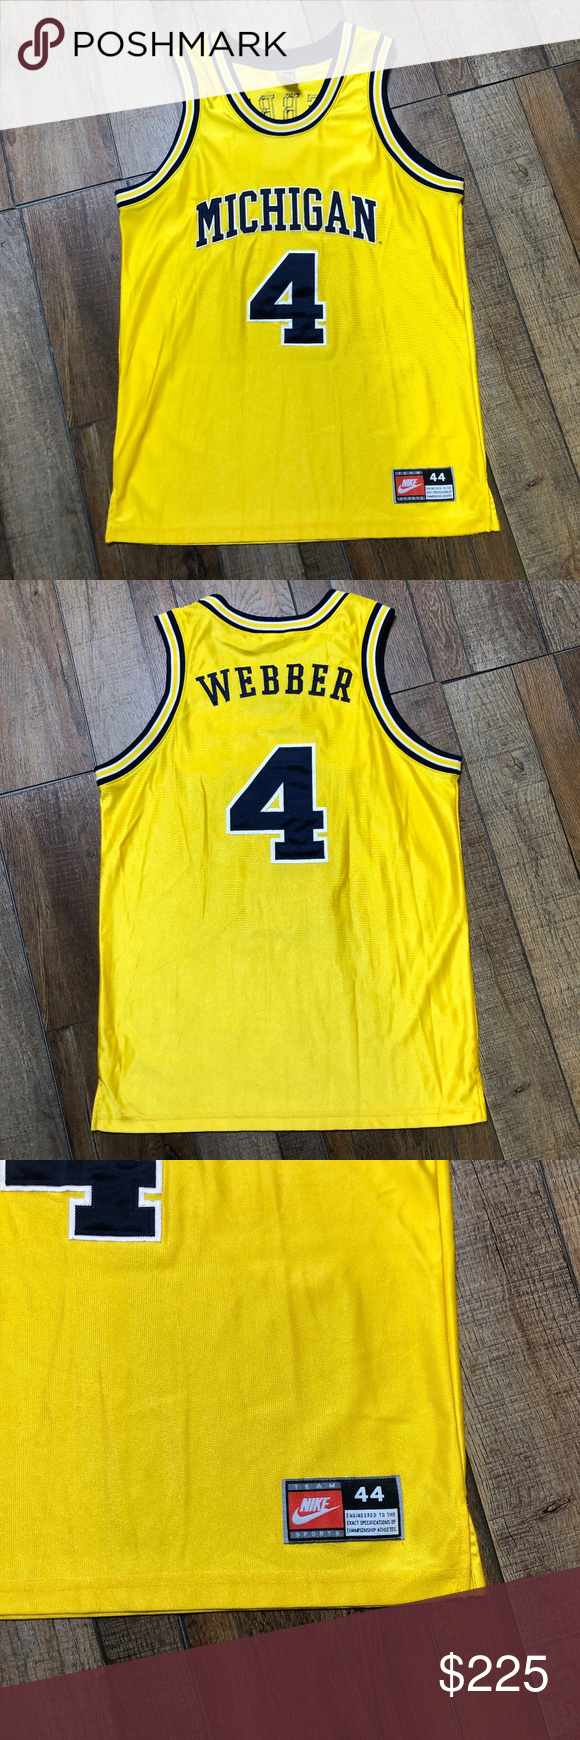 the best attitude 6d4c8 2f72c Chris Weber Michigan Wolverines NCAA Nike Jersey Chris ...